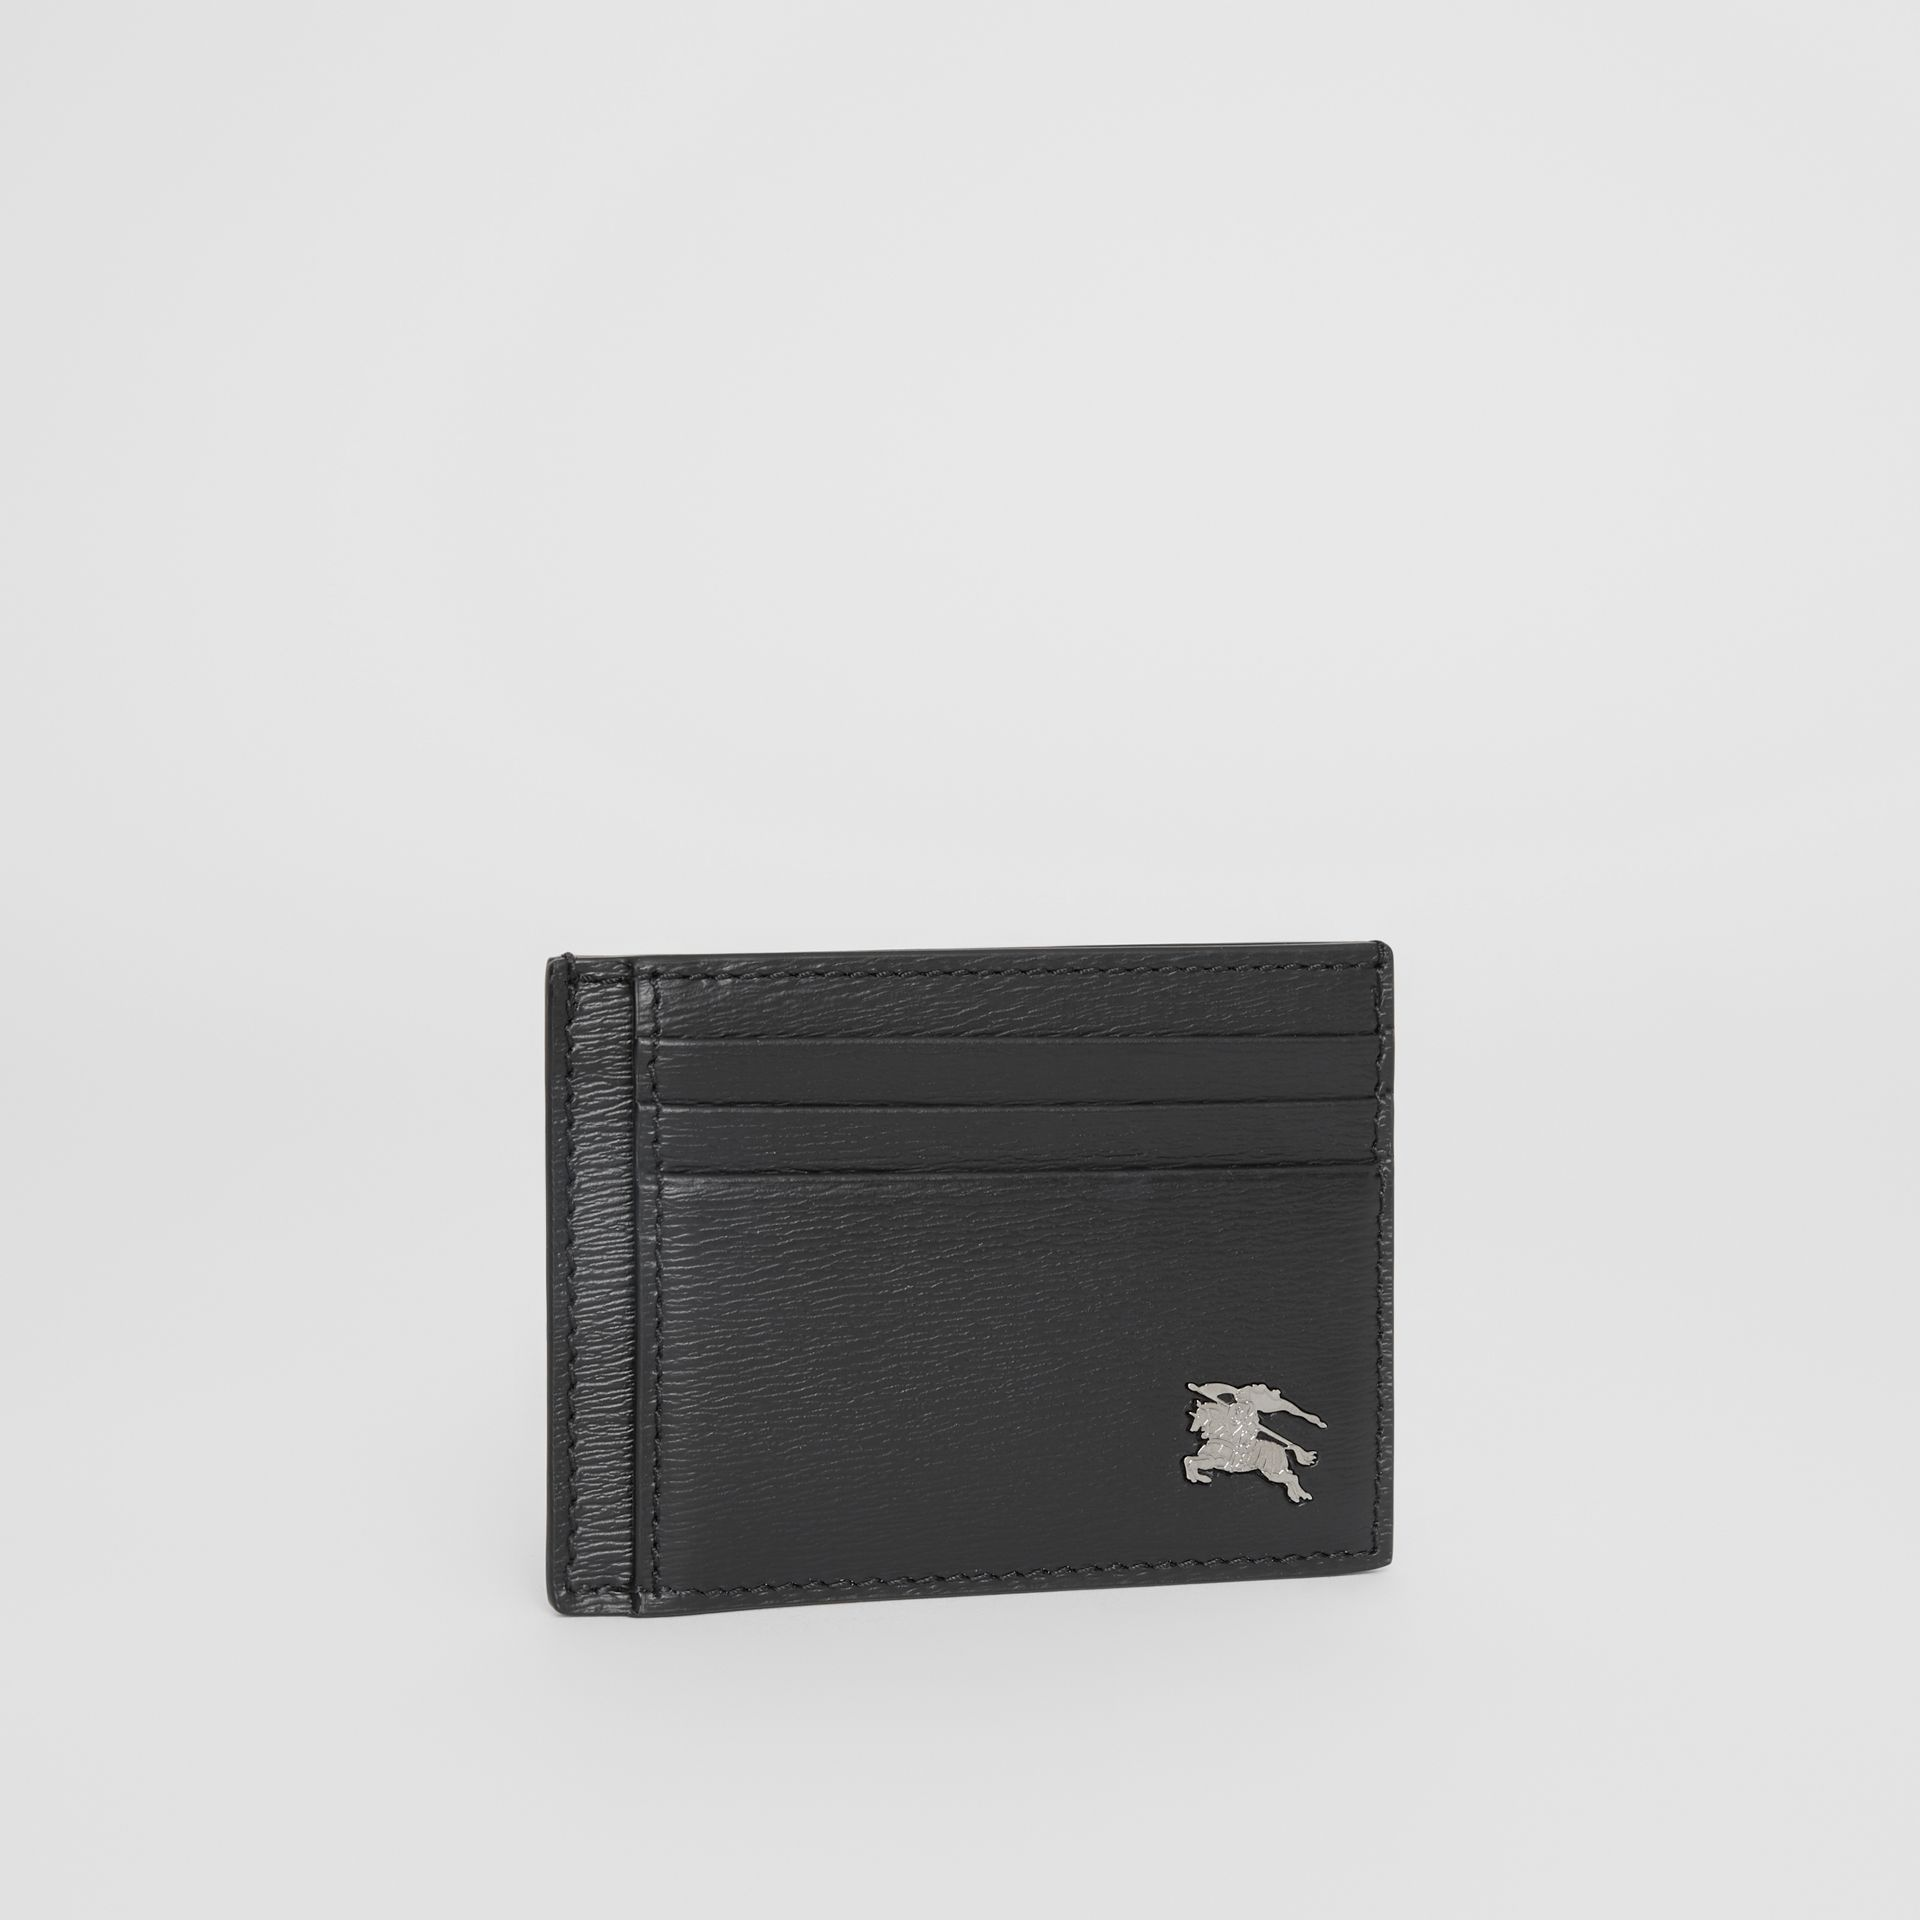 London Leather Money Clip Card Case in Black - Men | Burberry - gallery image 3